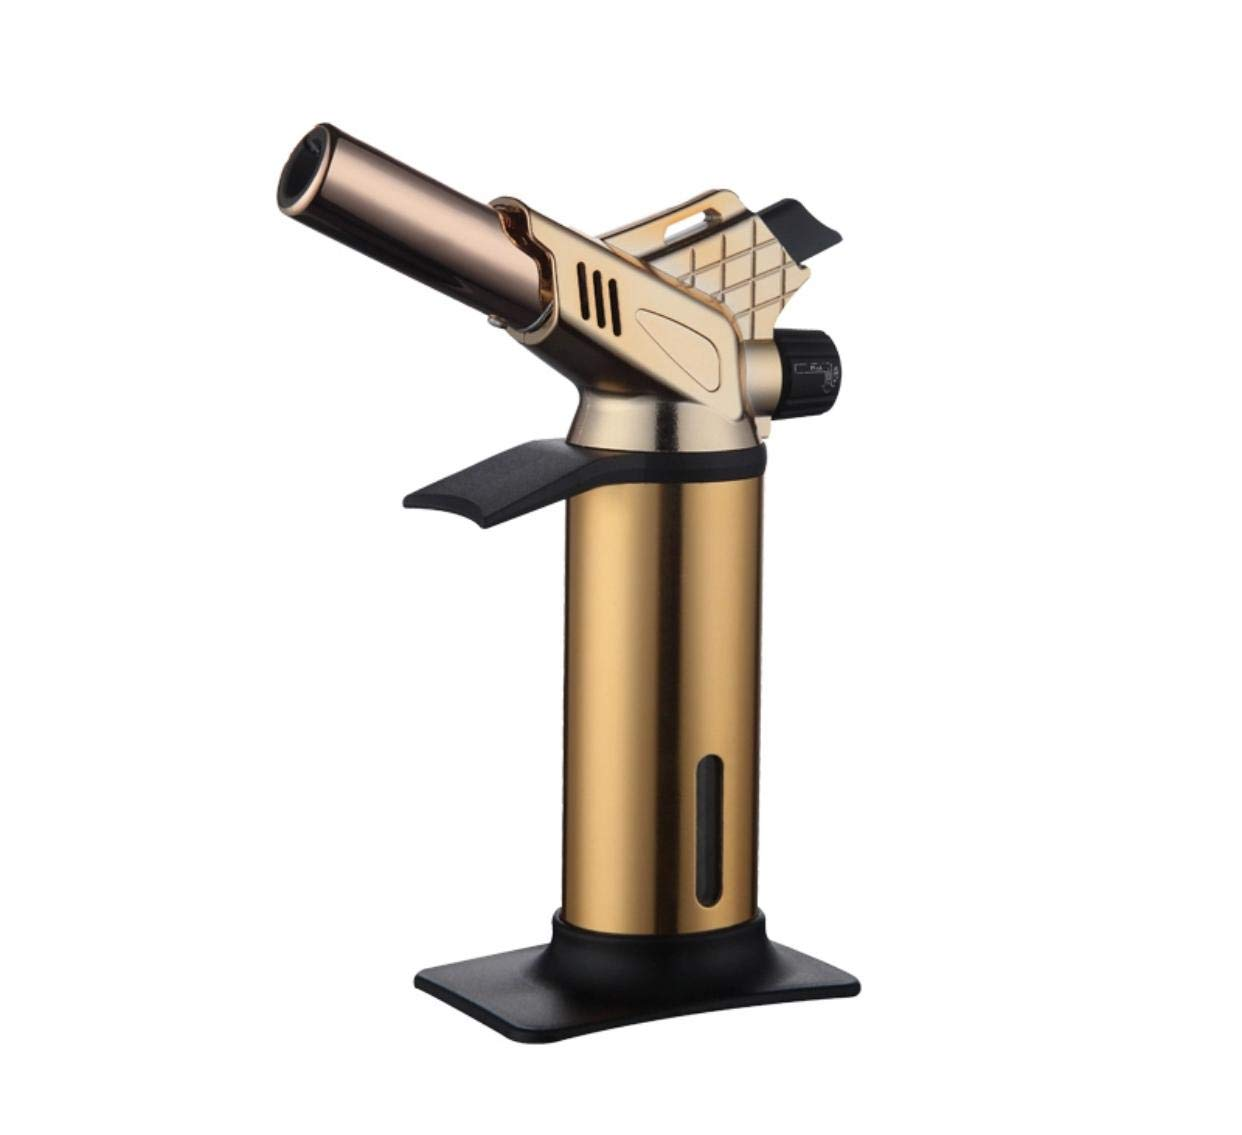 Blow Torch - Culinary - Gold - Adjustable Kitchen Blow Torch Lighter with Safety Lock - Professional Chef Blow Flame - Butane Refillable - Creme Brûlée - BBQ - Chef's Craftsmanship